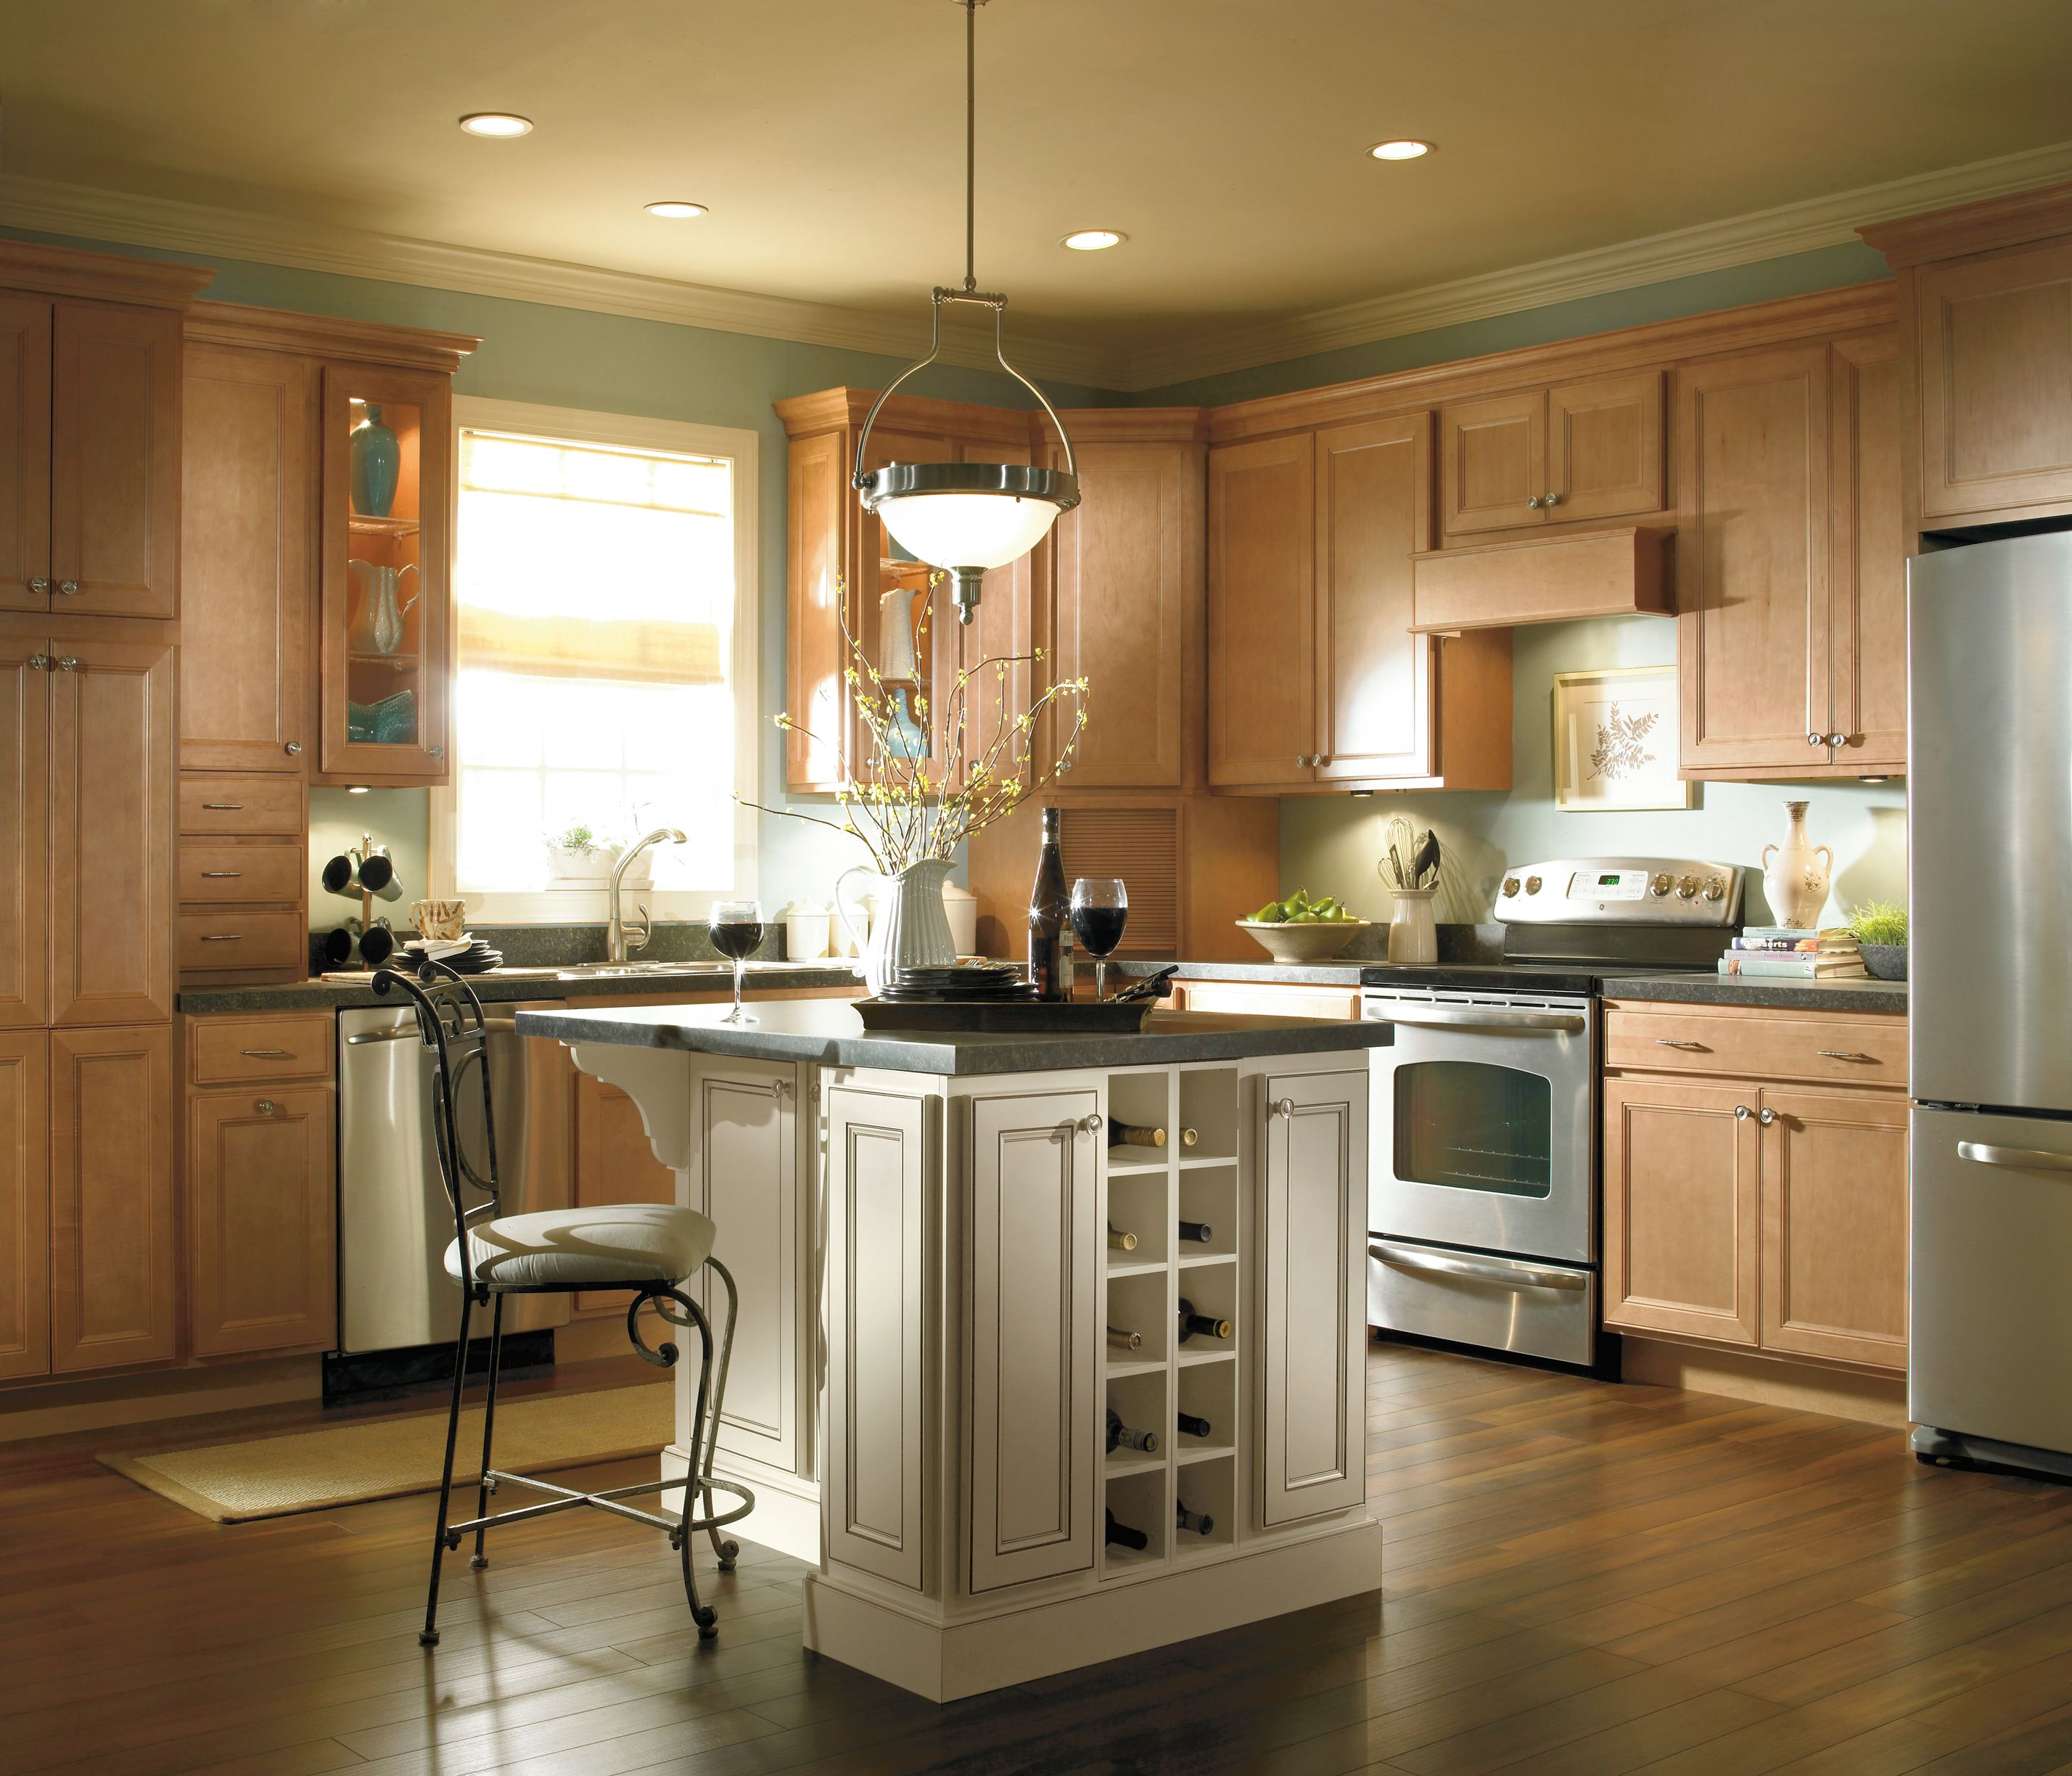 Traditional Overlay Construction Allows This Modern Beauty To Remain Firmly Rooted In The Past Maple Kitchen Cabinets Maple Kitchen Kitchen Cabinet Styles